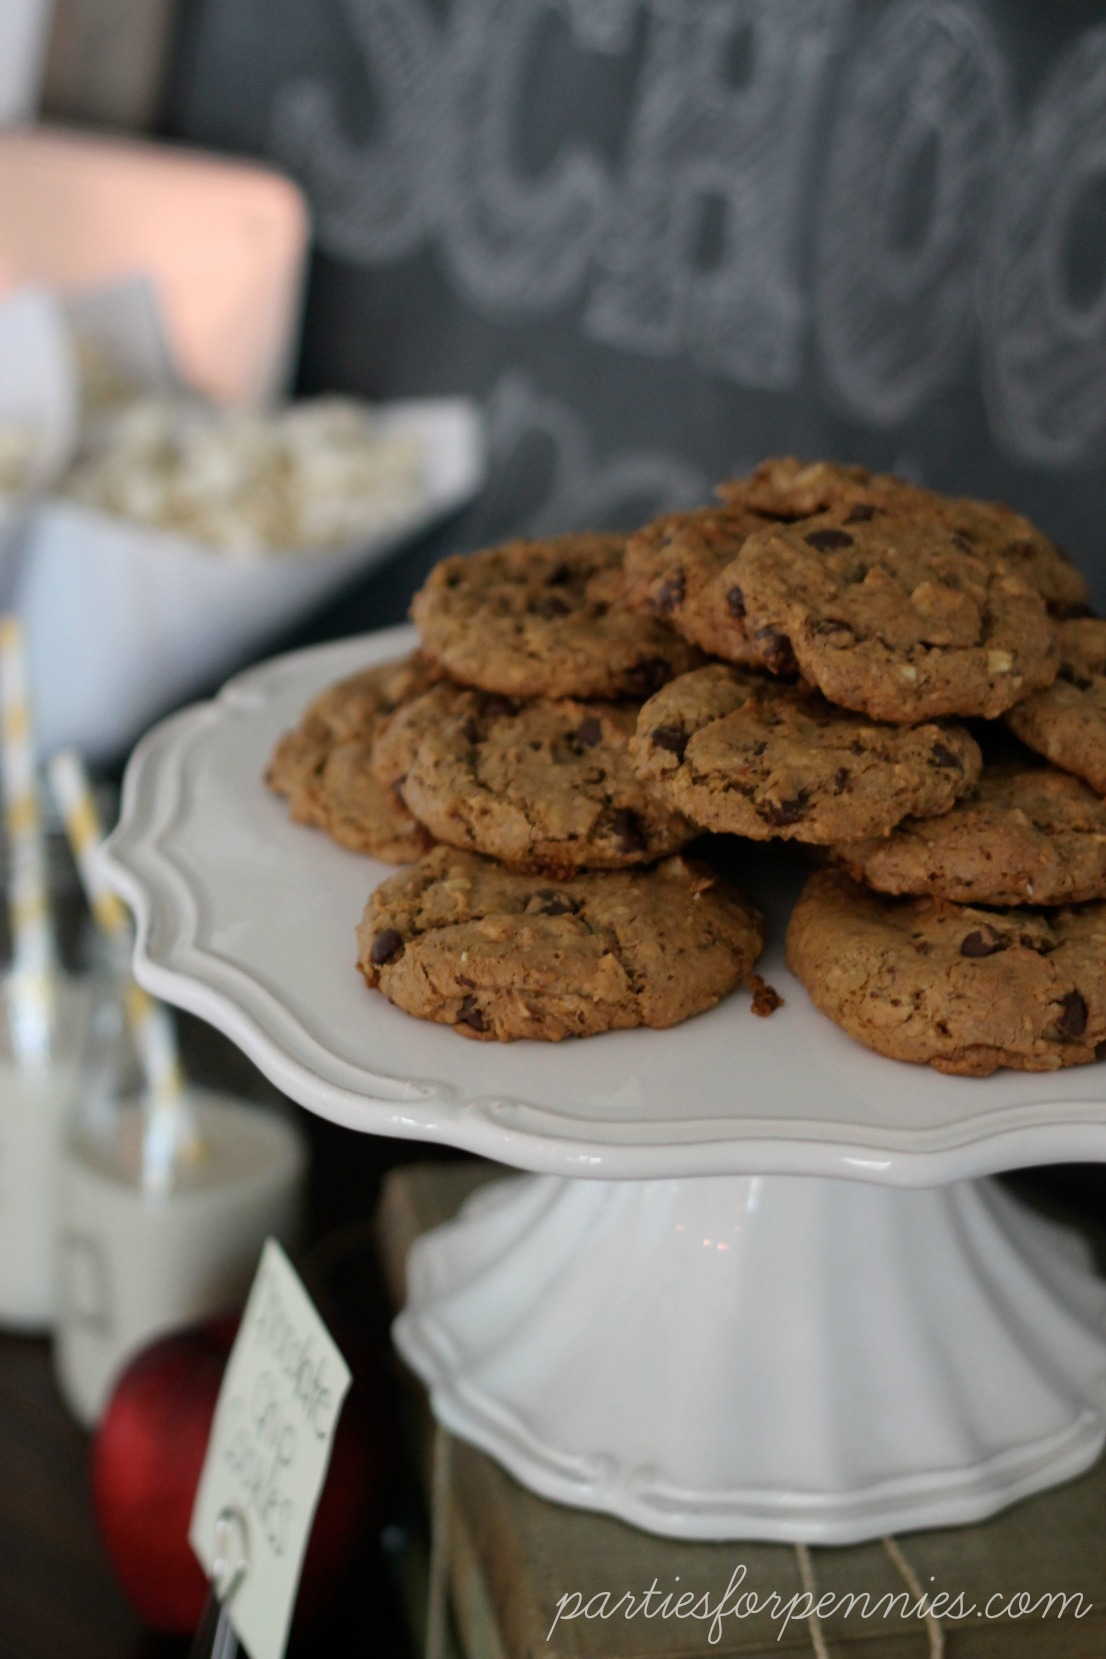 Back to School Party - Cookies by PartiesforPennies.com